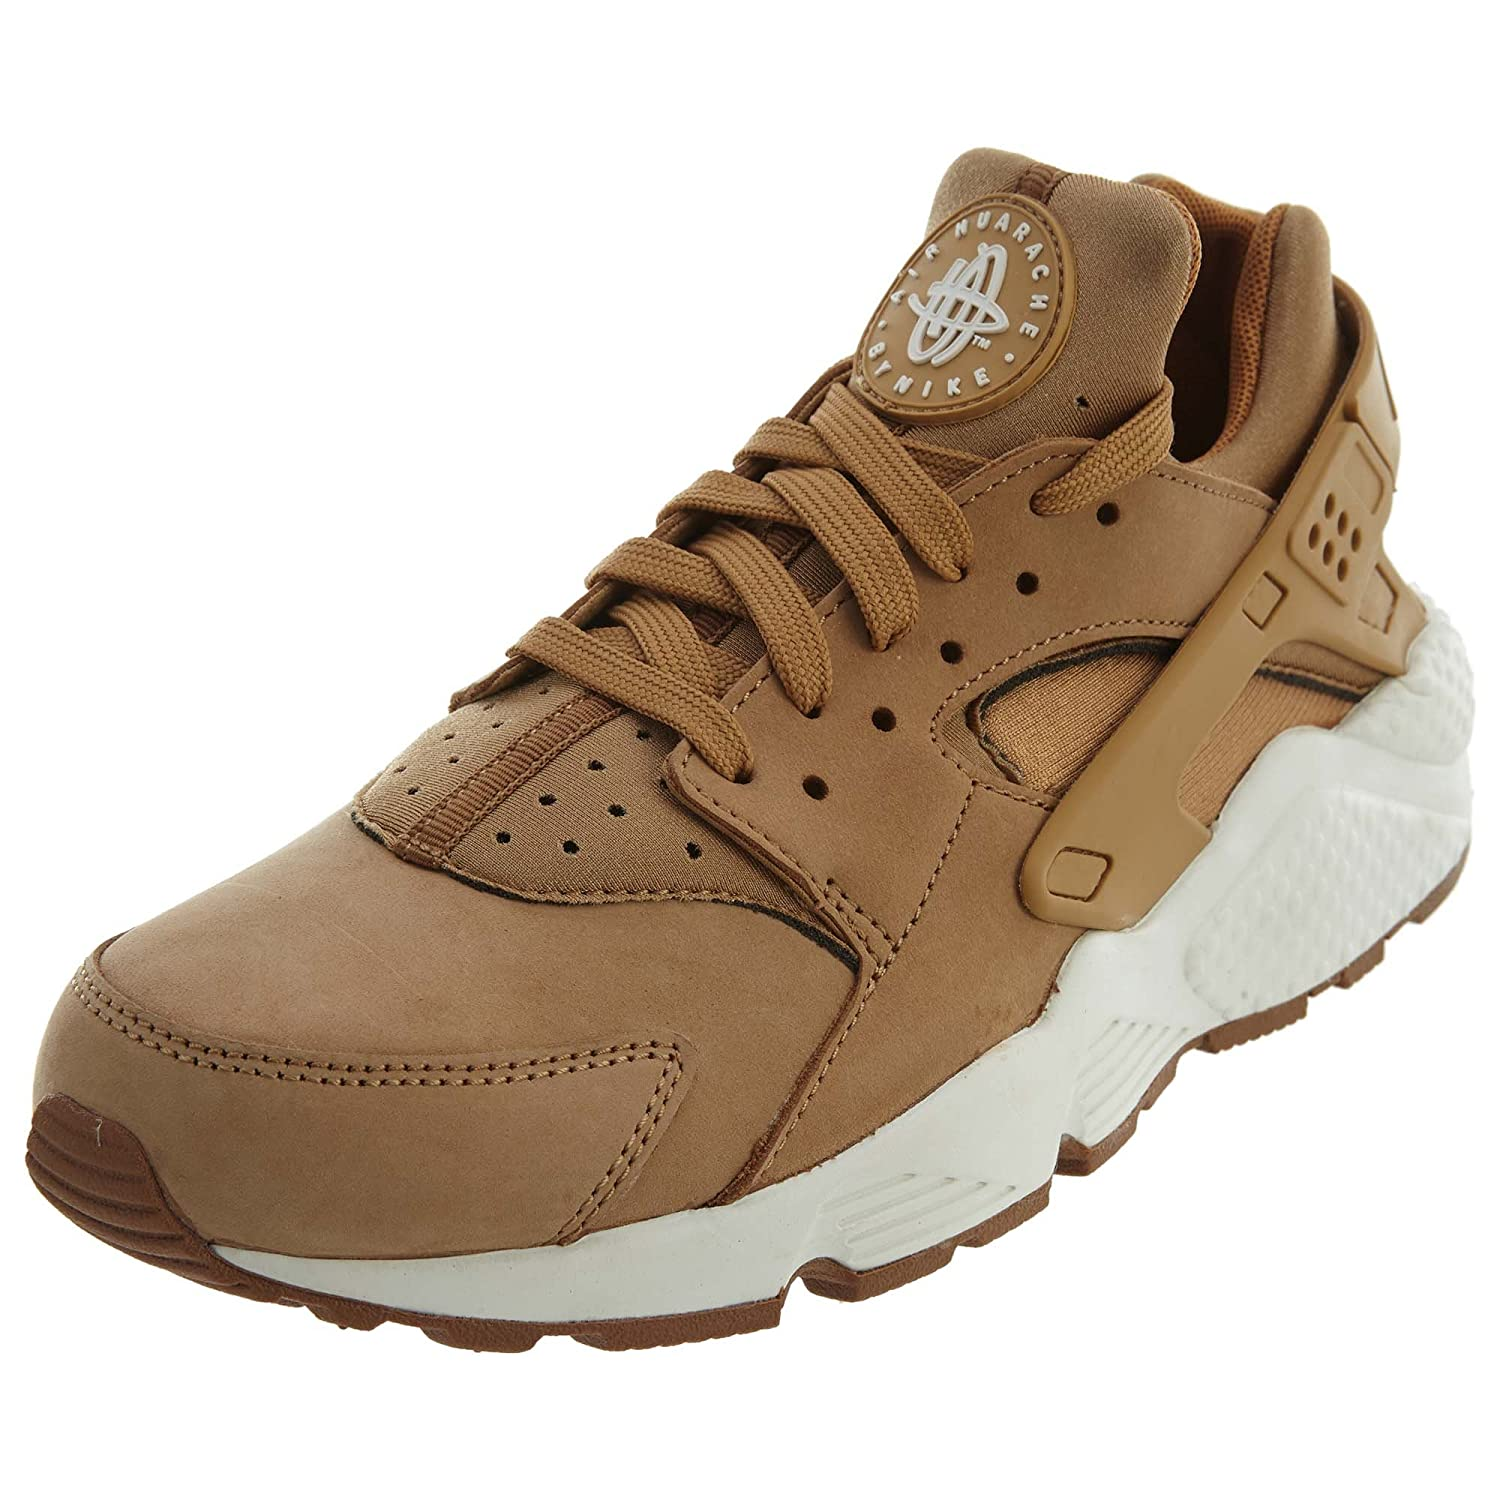 Nike Herren Air Huarache Run Prm Laufschuhe  40 EU|Flax Sail Gum Brown 202